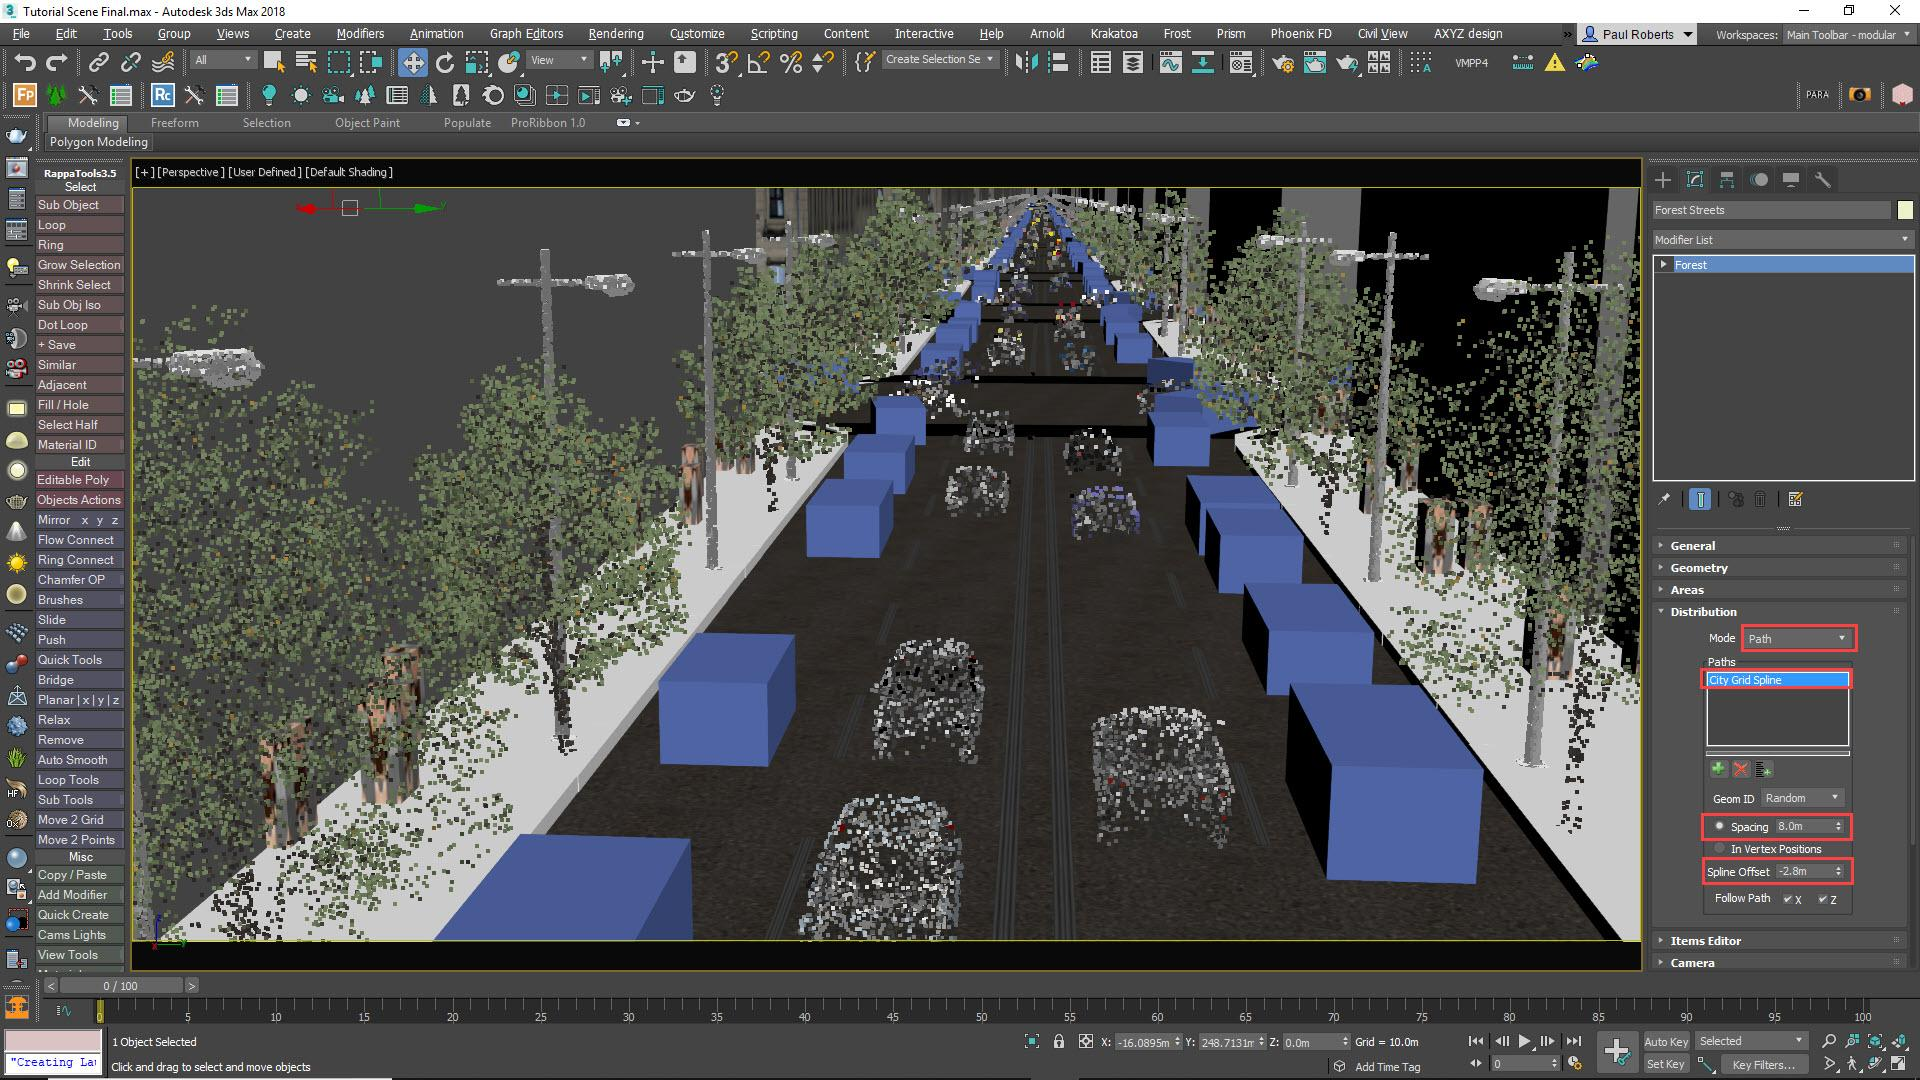 Step 25 - Adding Trees to the Streets